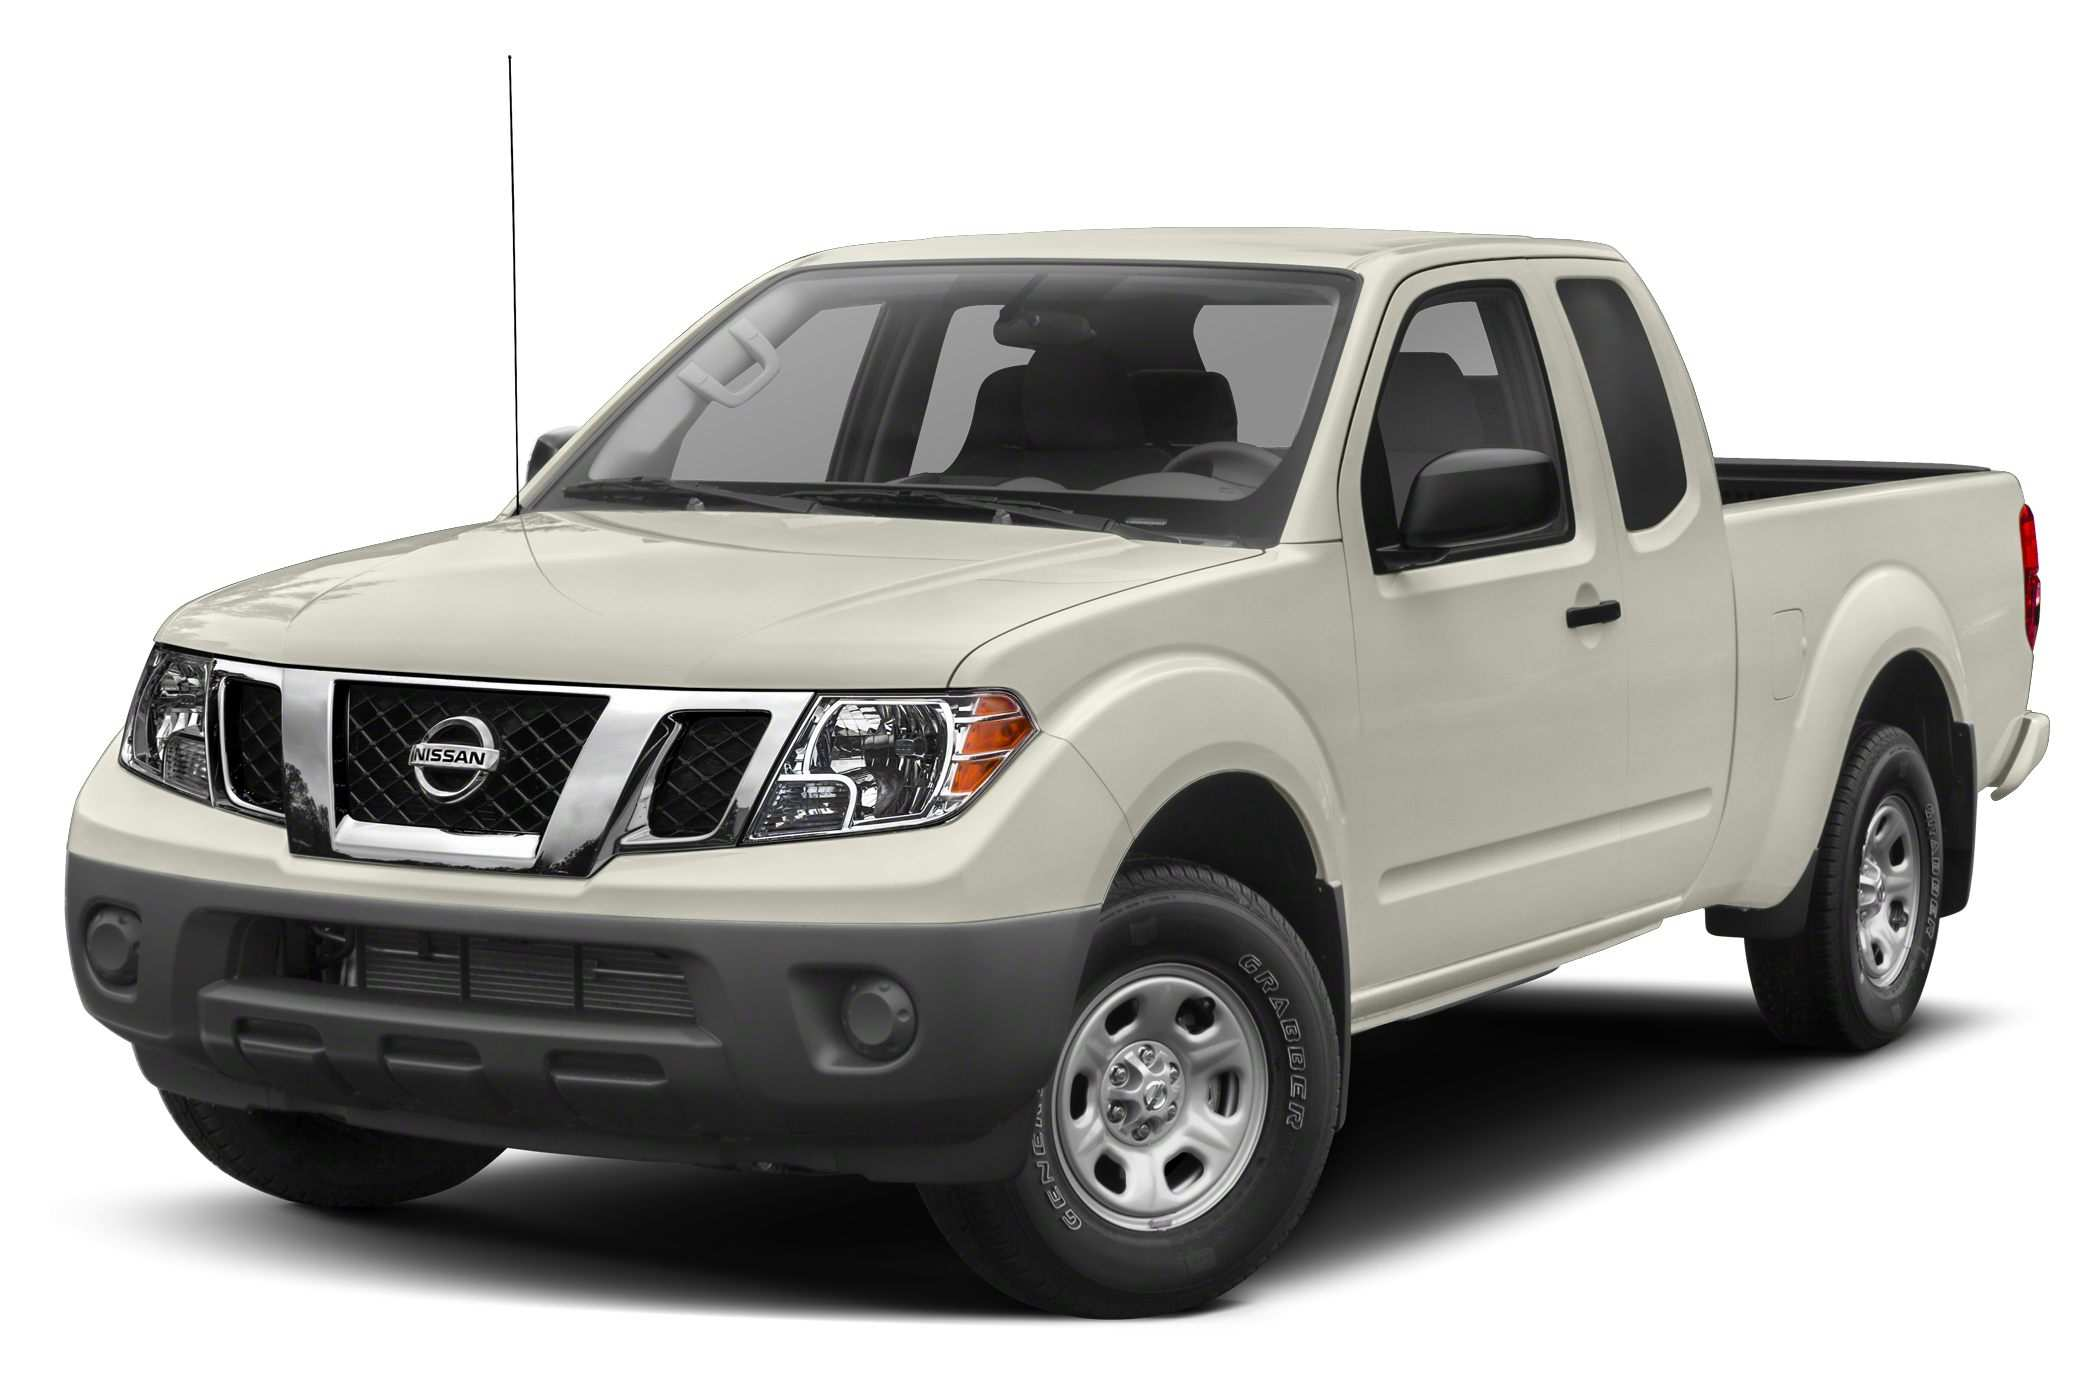 18 Concept of 2020 Nissan Frontier Youtube Research New by 2020 Nissan Frontier Youtube